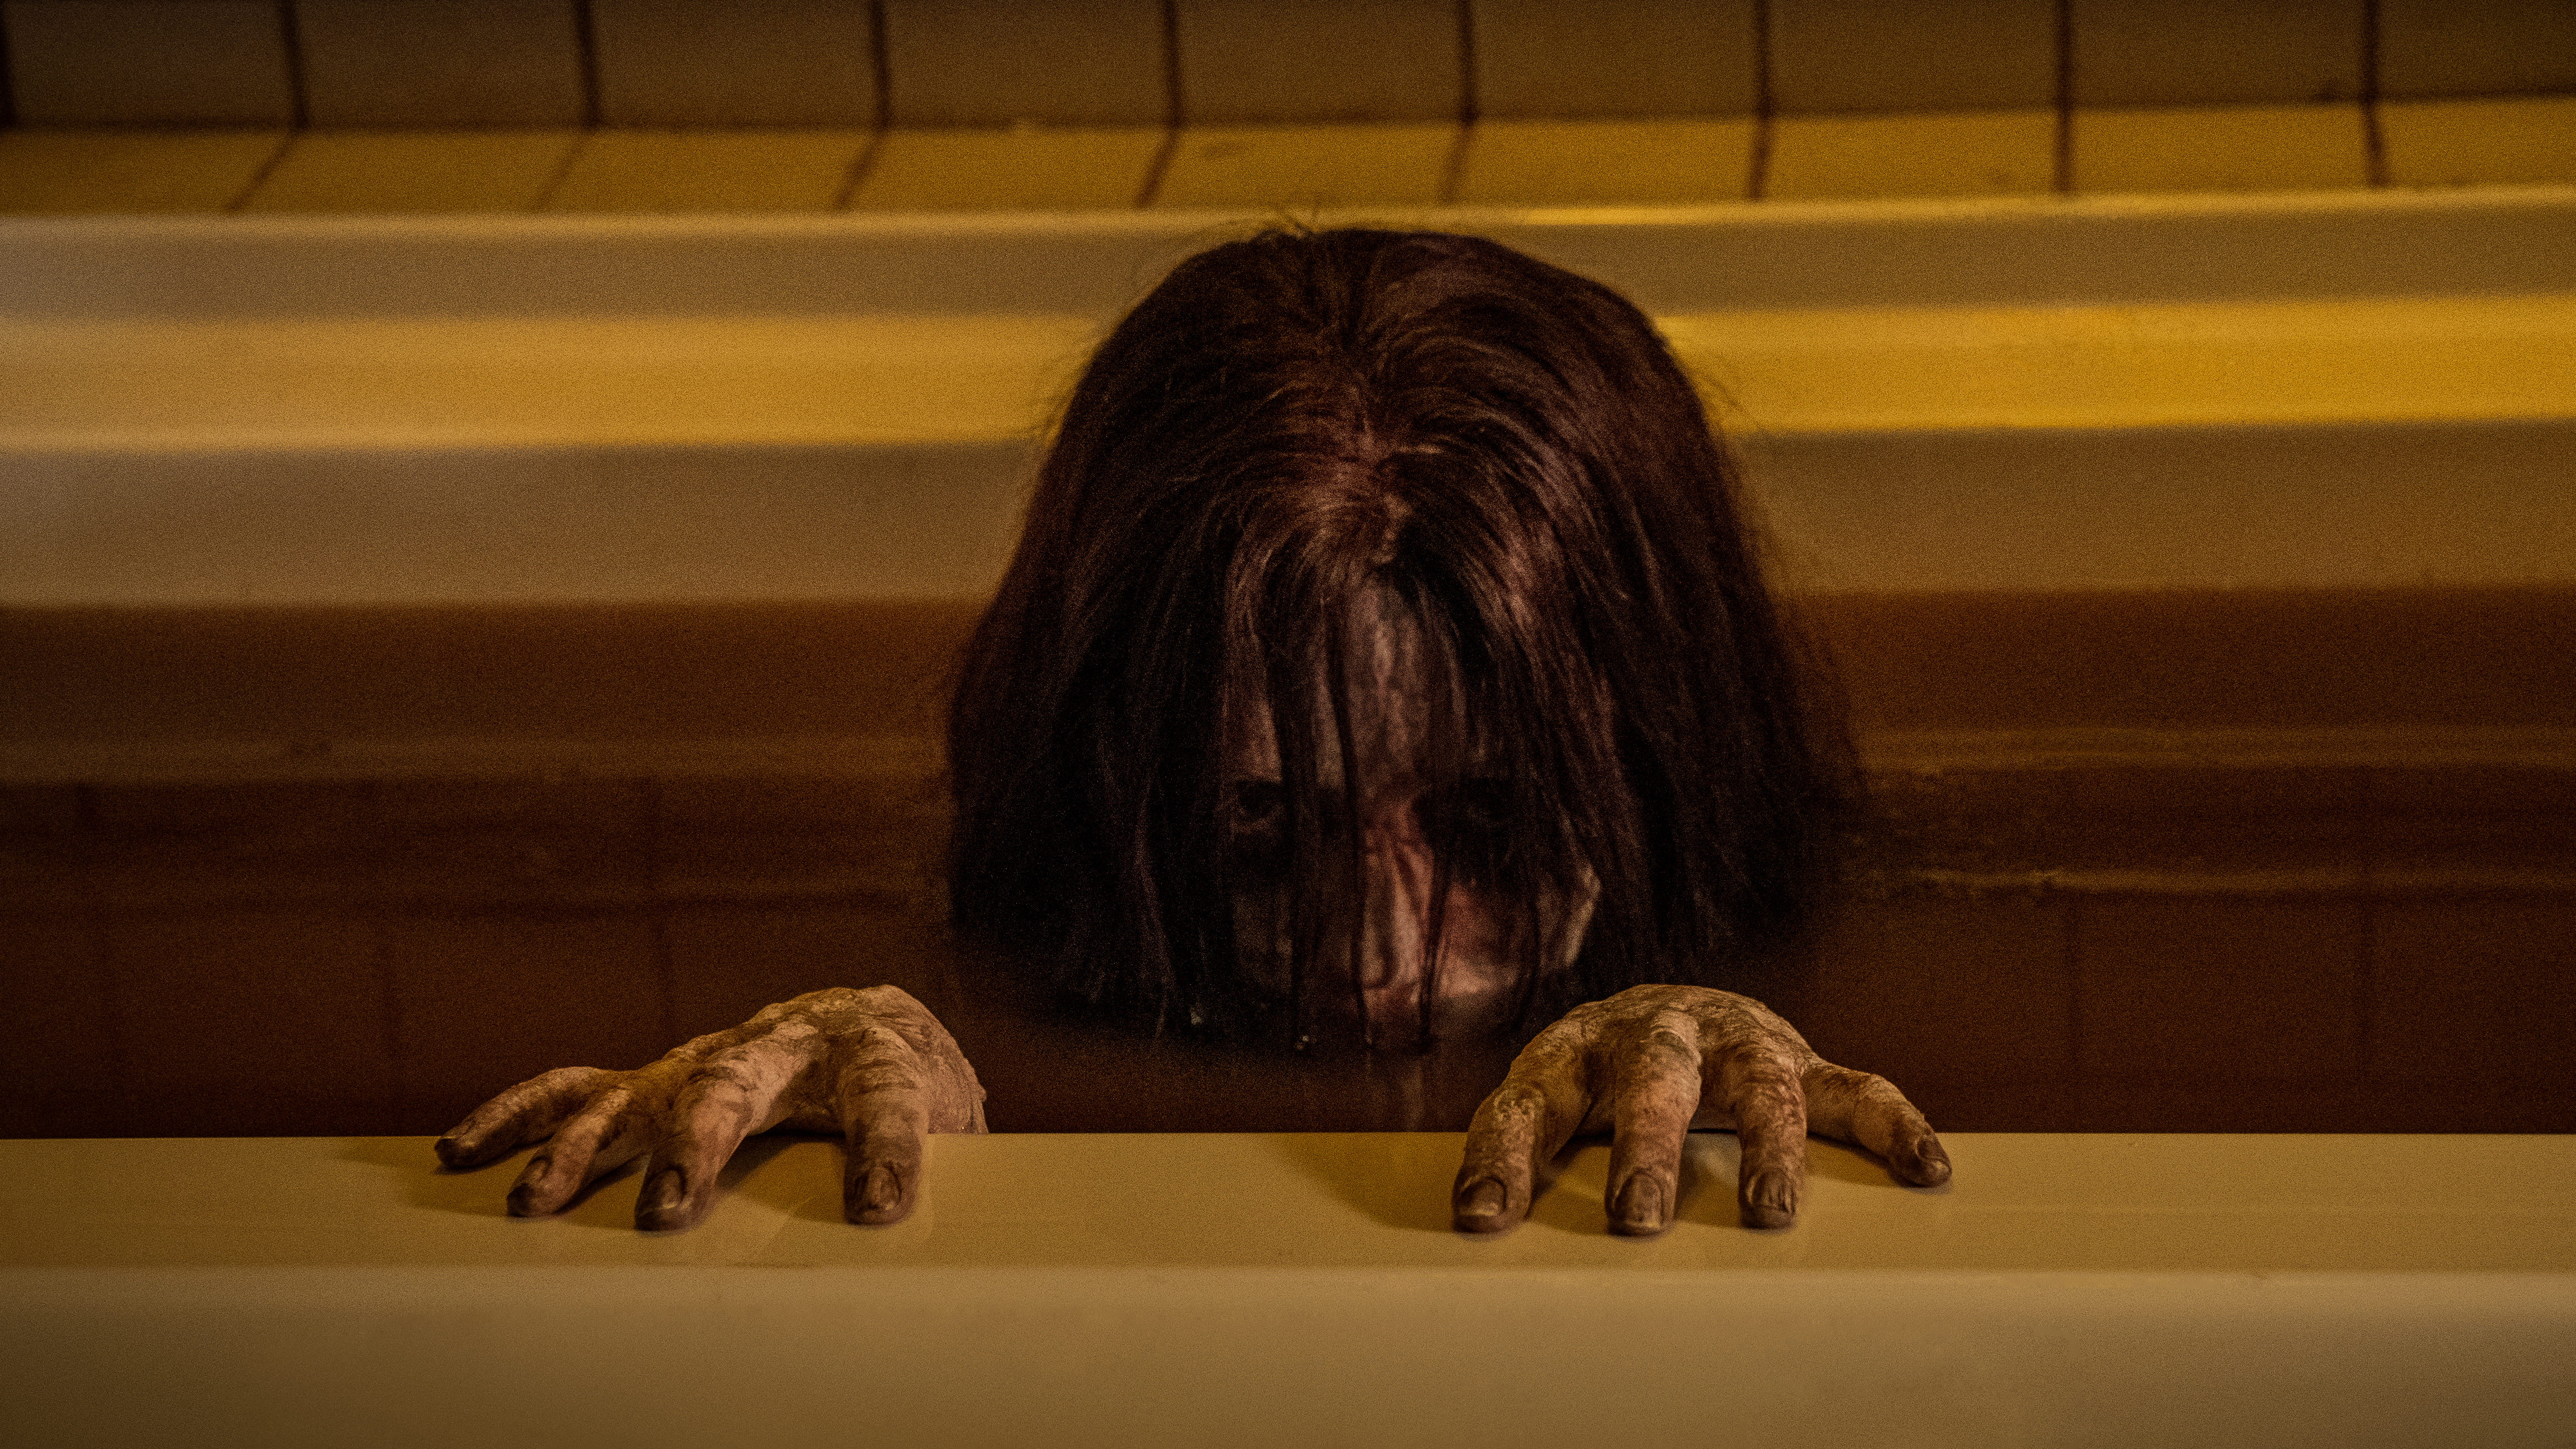 Box Office: 'The Grudge' Earns Solid $1.8 Million on Thursday